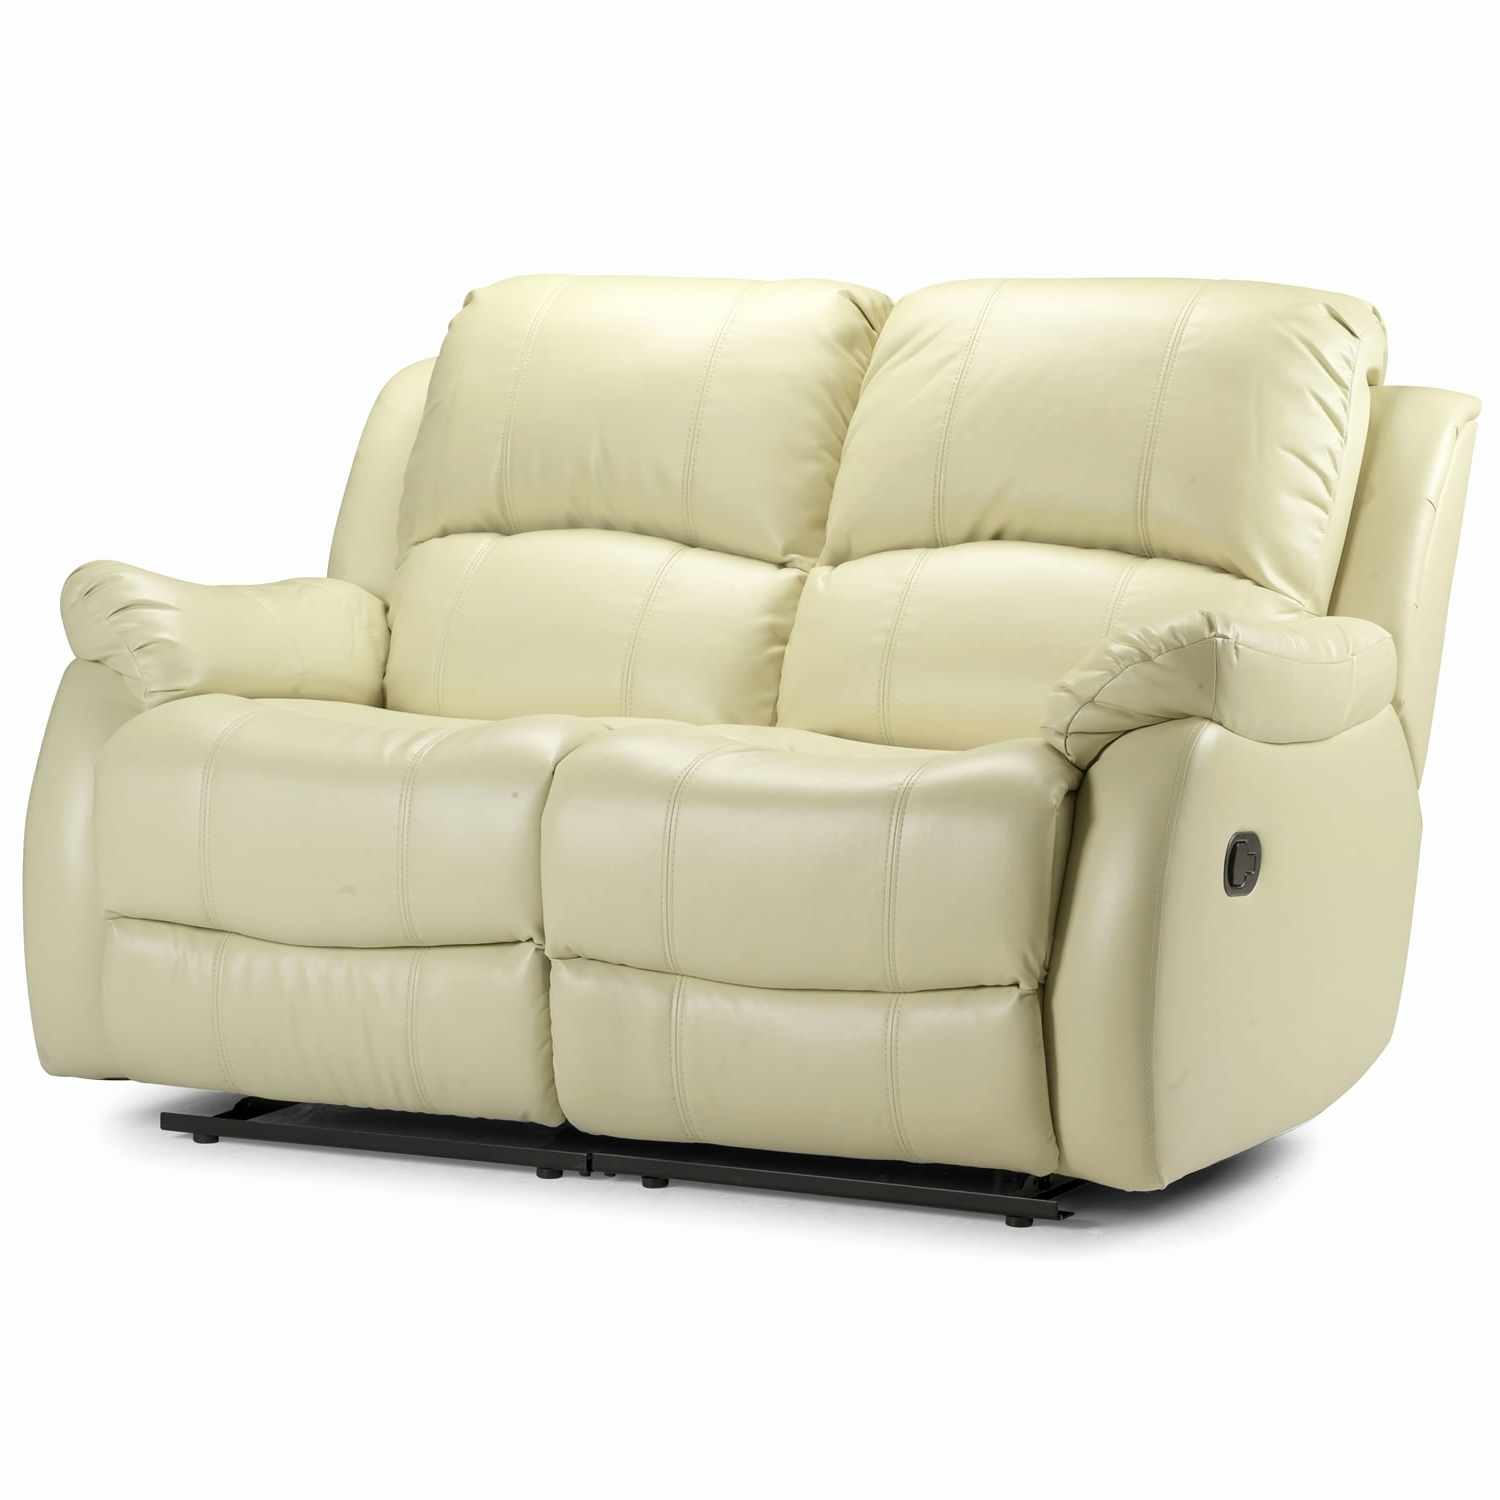 Sofa : Cream Leather Sofa New Sofa 2 Seater Cream Leather Sofa Within Favorite 2 Seater Recliner Leather Sofas (View 17 of 20)